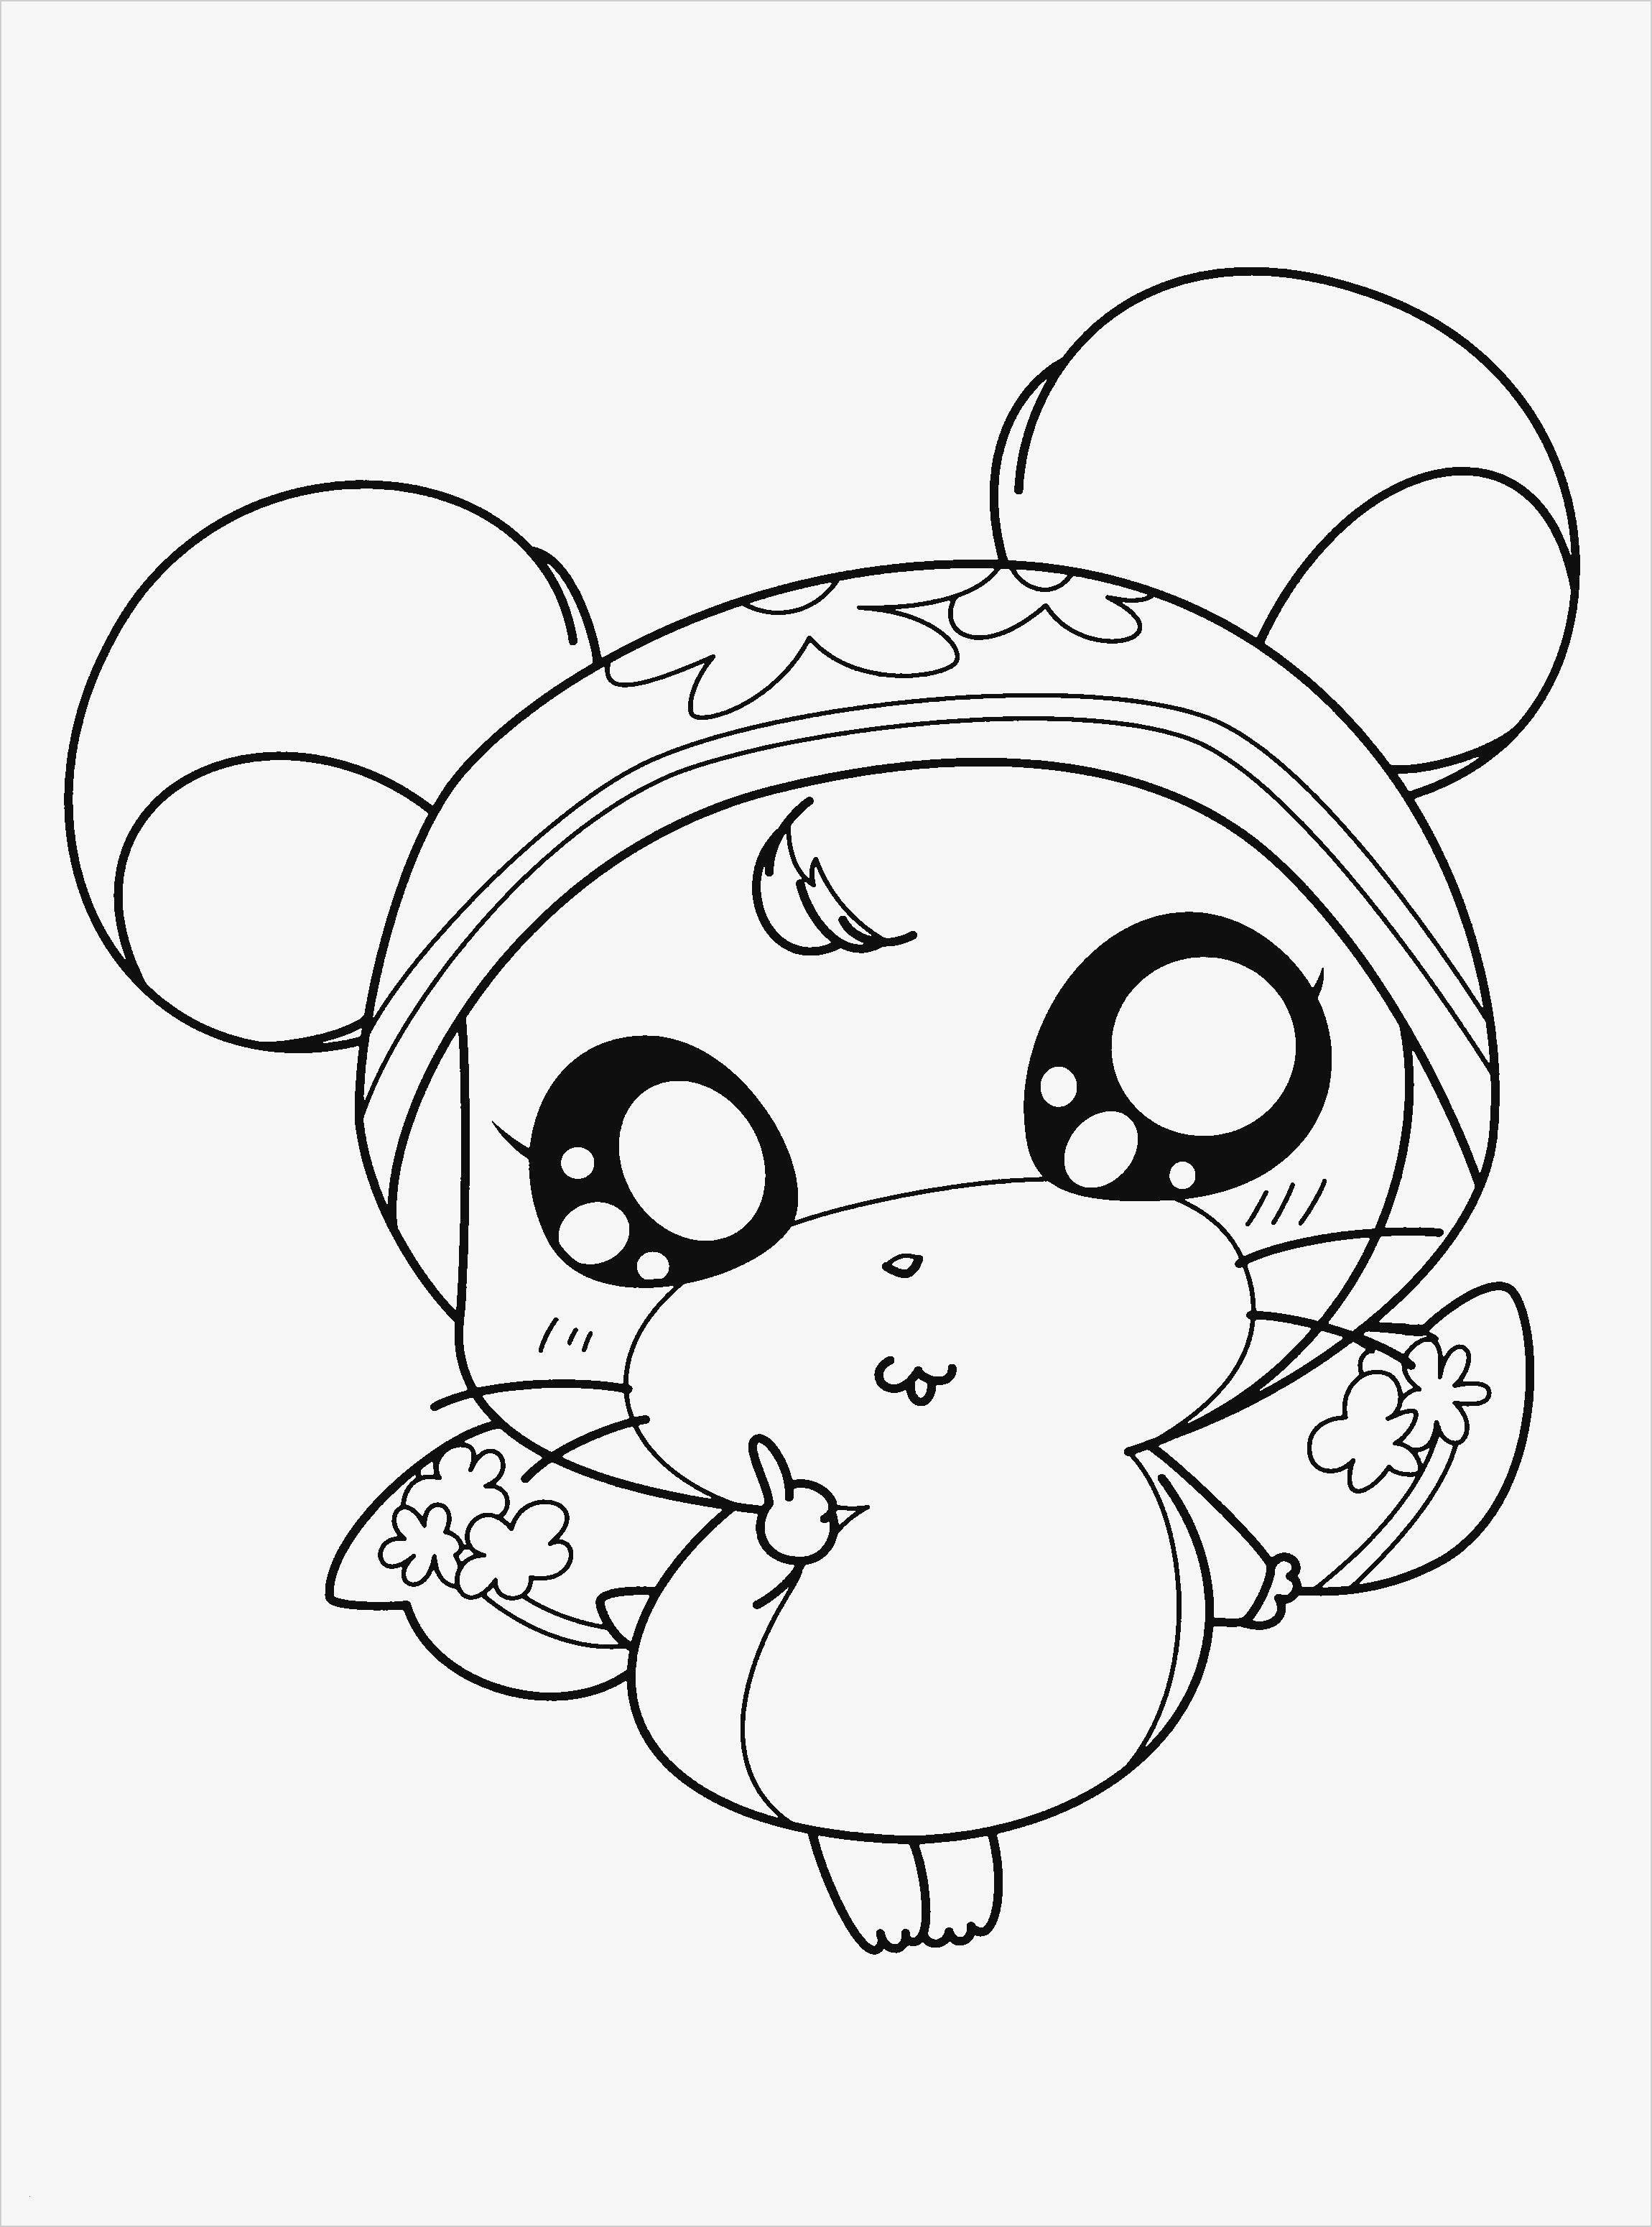 Coloring Pages For 3 Year Olds Lovely Coloring Pages 3 Year Olds Coloring